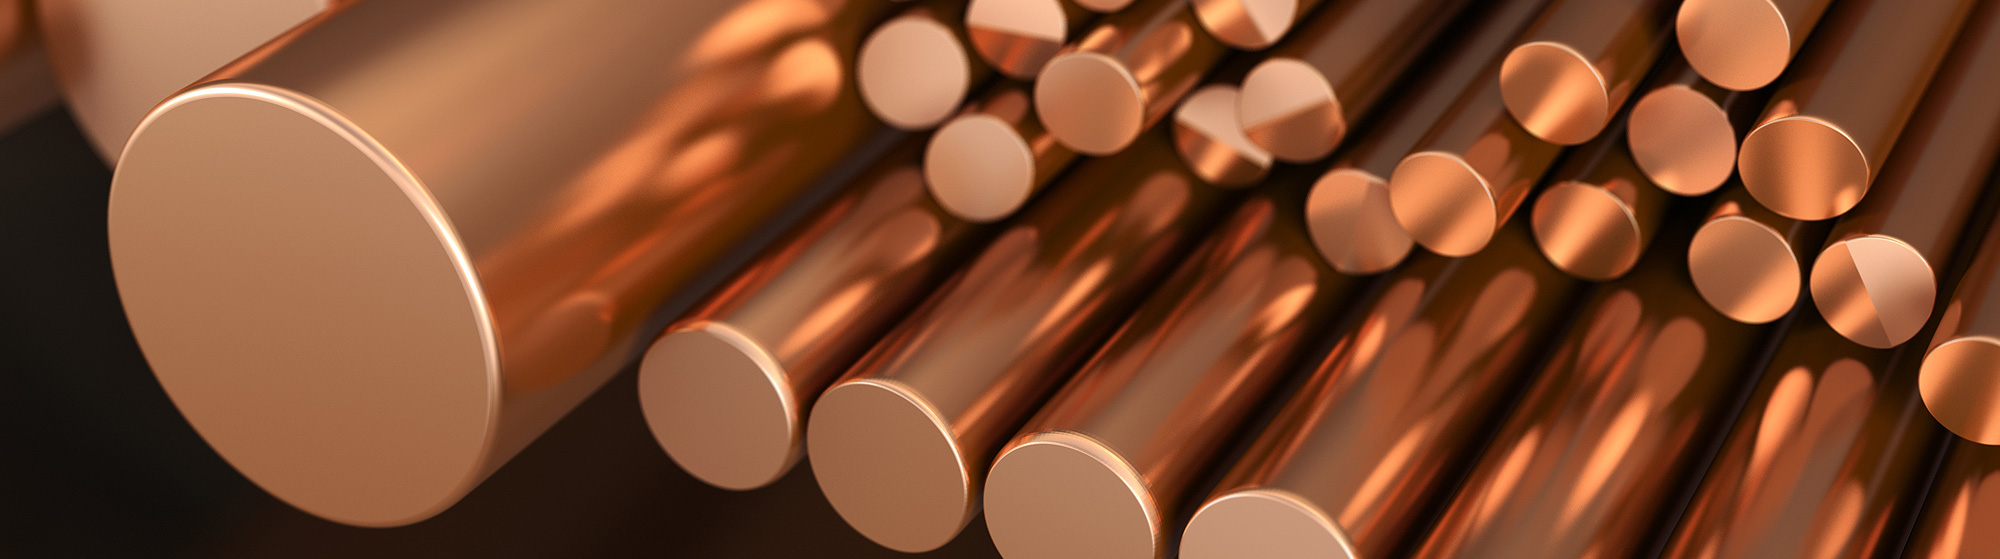 Copper Wave Analysis – 26 May, 2020